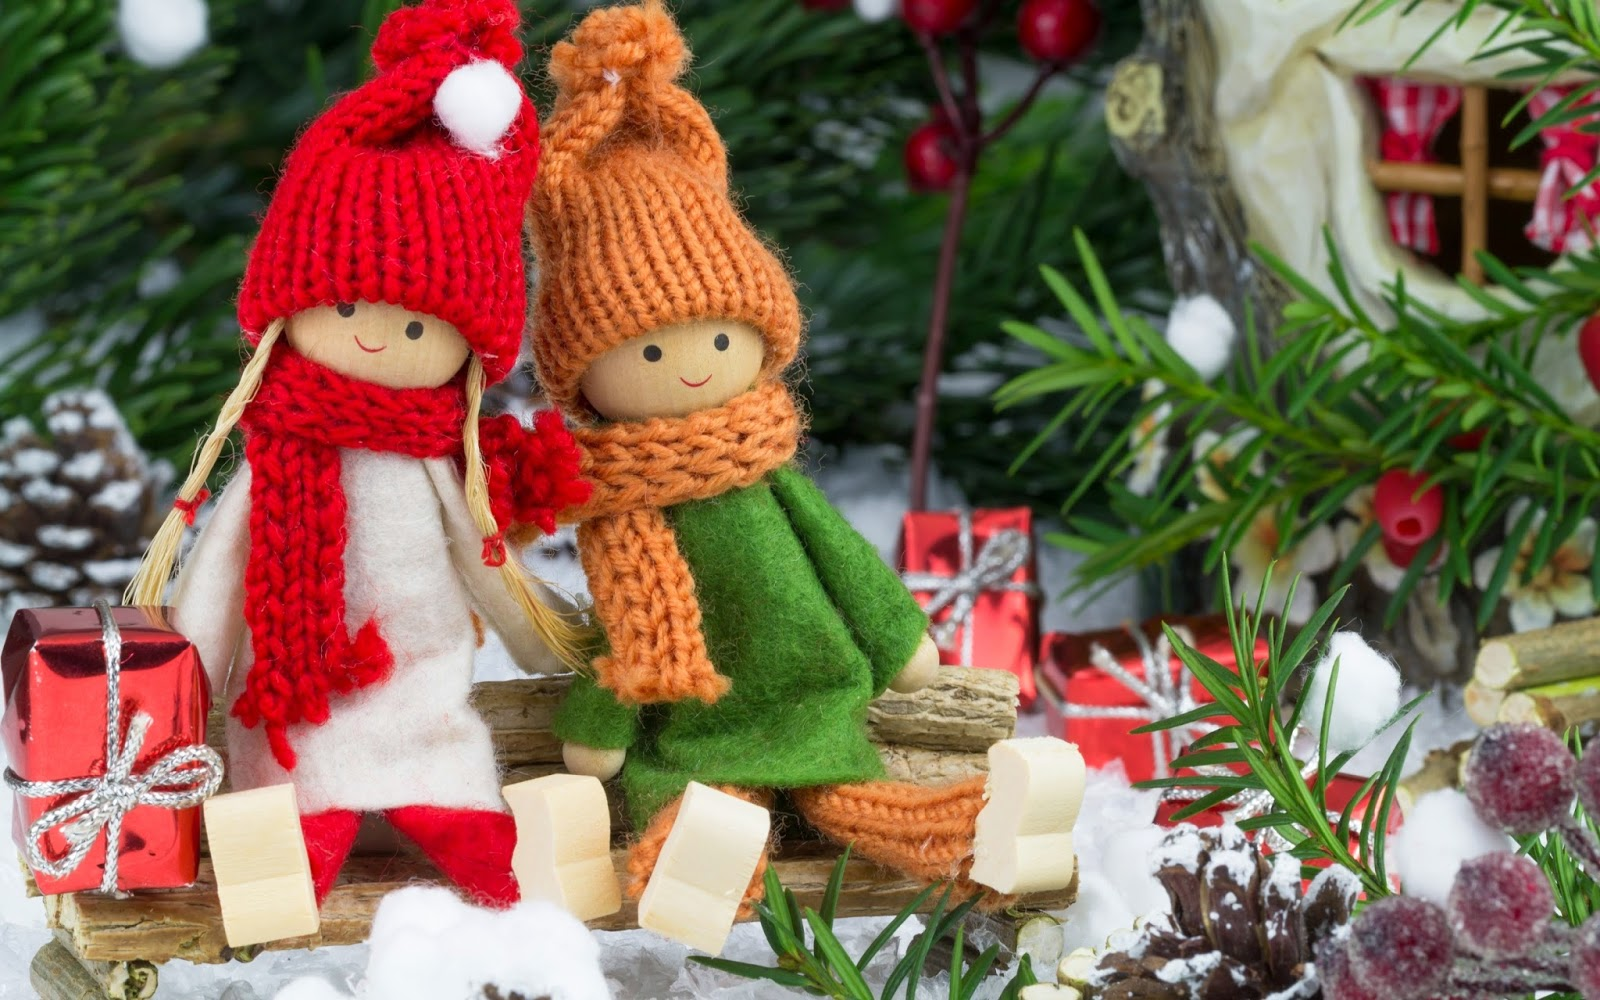 Handmade-Christmas-toys-beautiful-dolls-decoration-images-pictures-photos.jpg